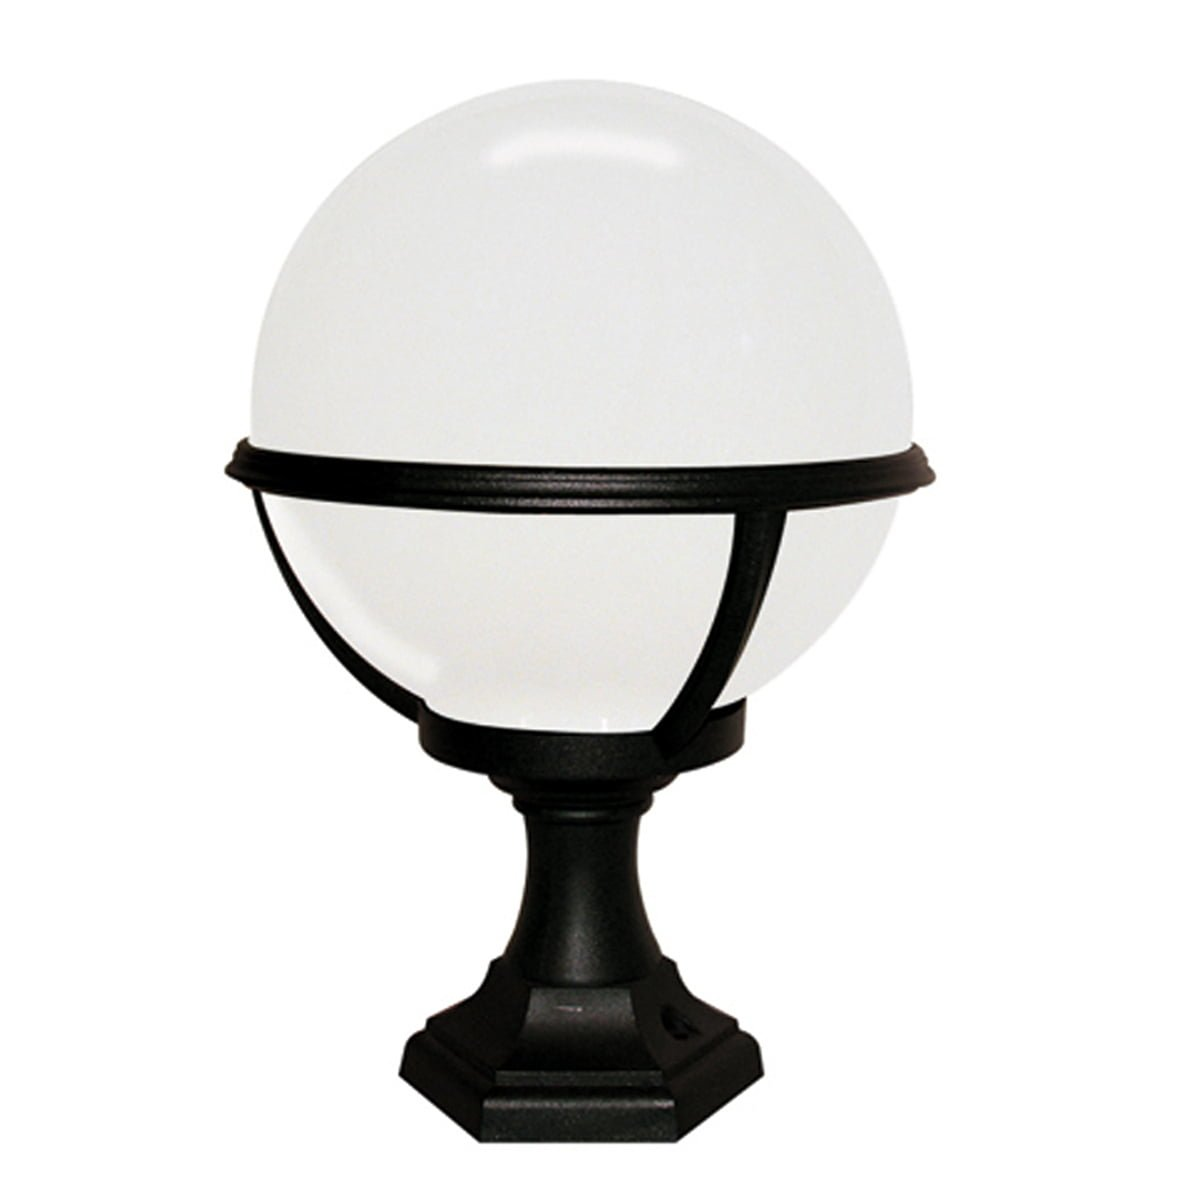 Elstead GLENBEIGH PED/PORCH Glenbeigh Outdoor Pedistal or Porch Light in Black.